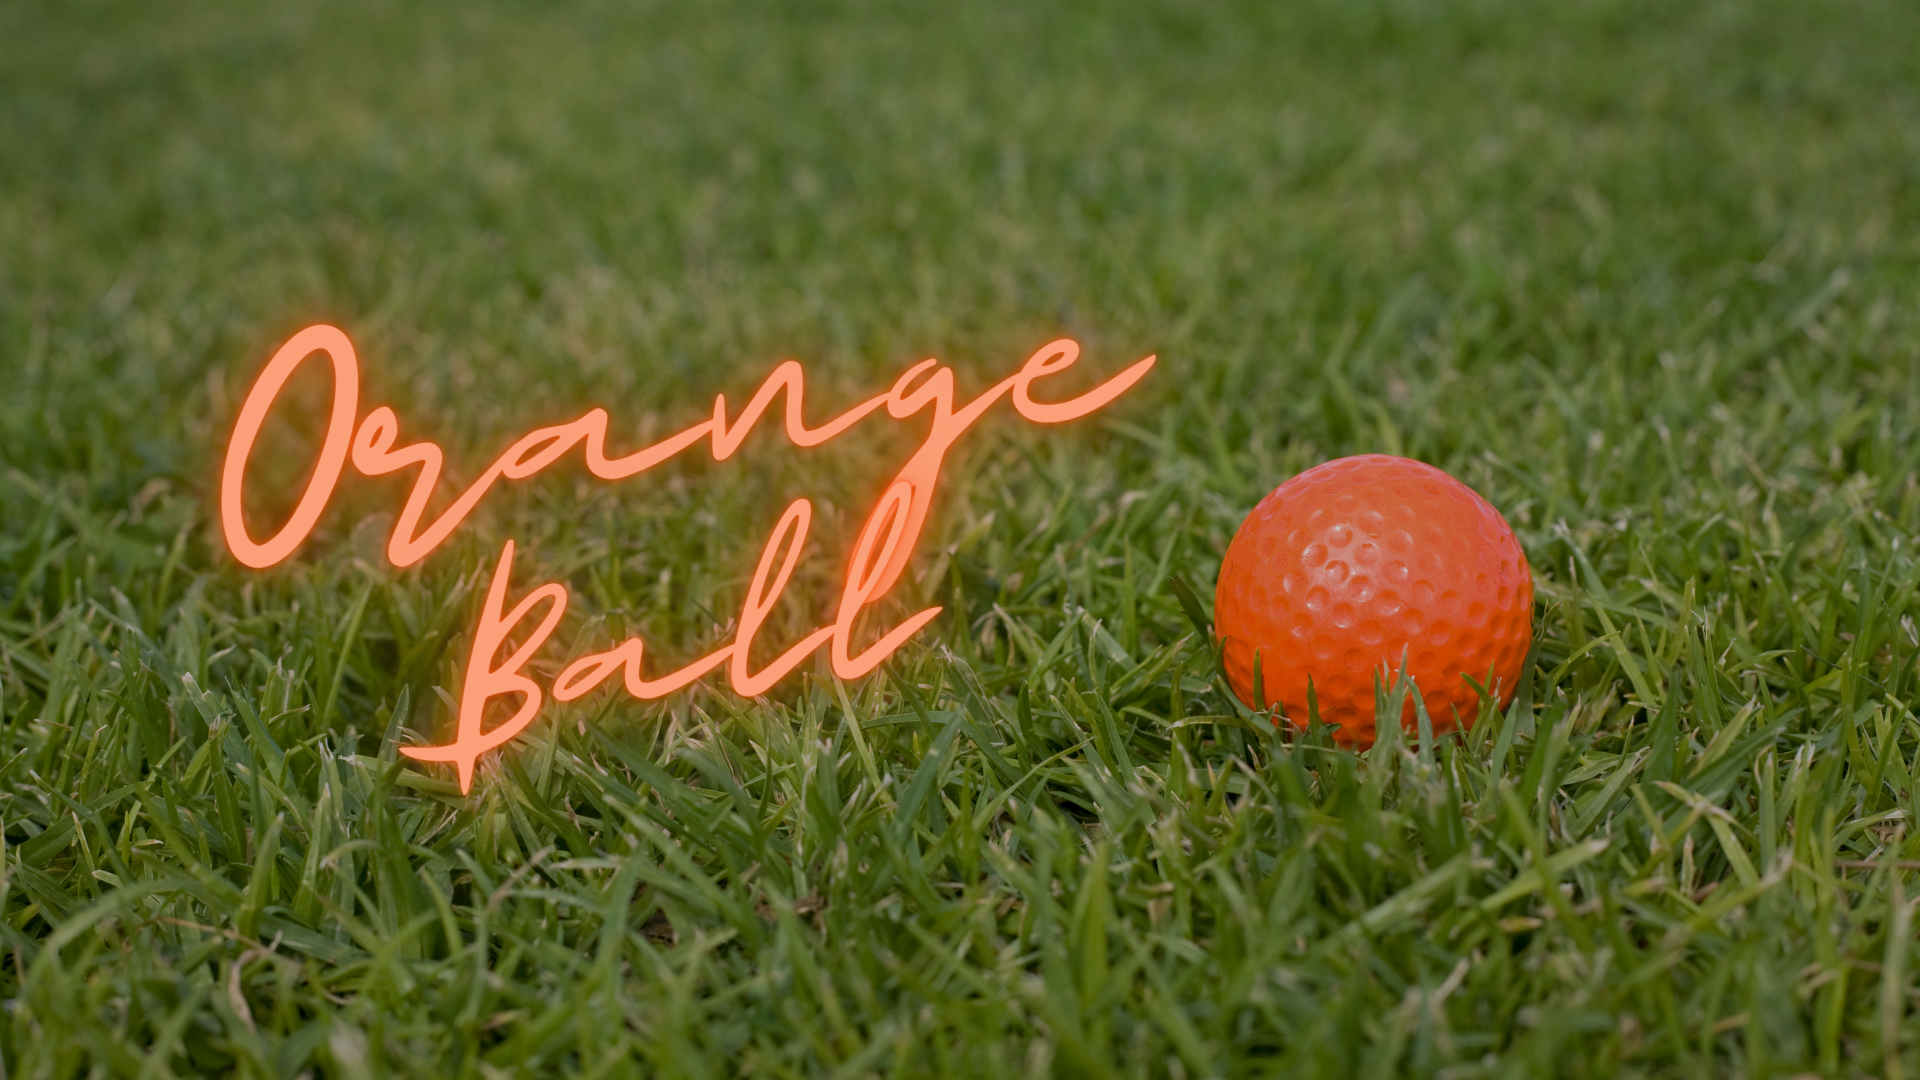 STARTING TIMES FOR ORANGE BALL!